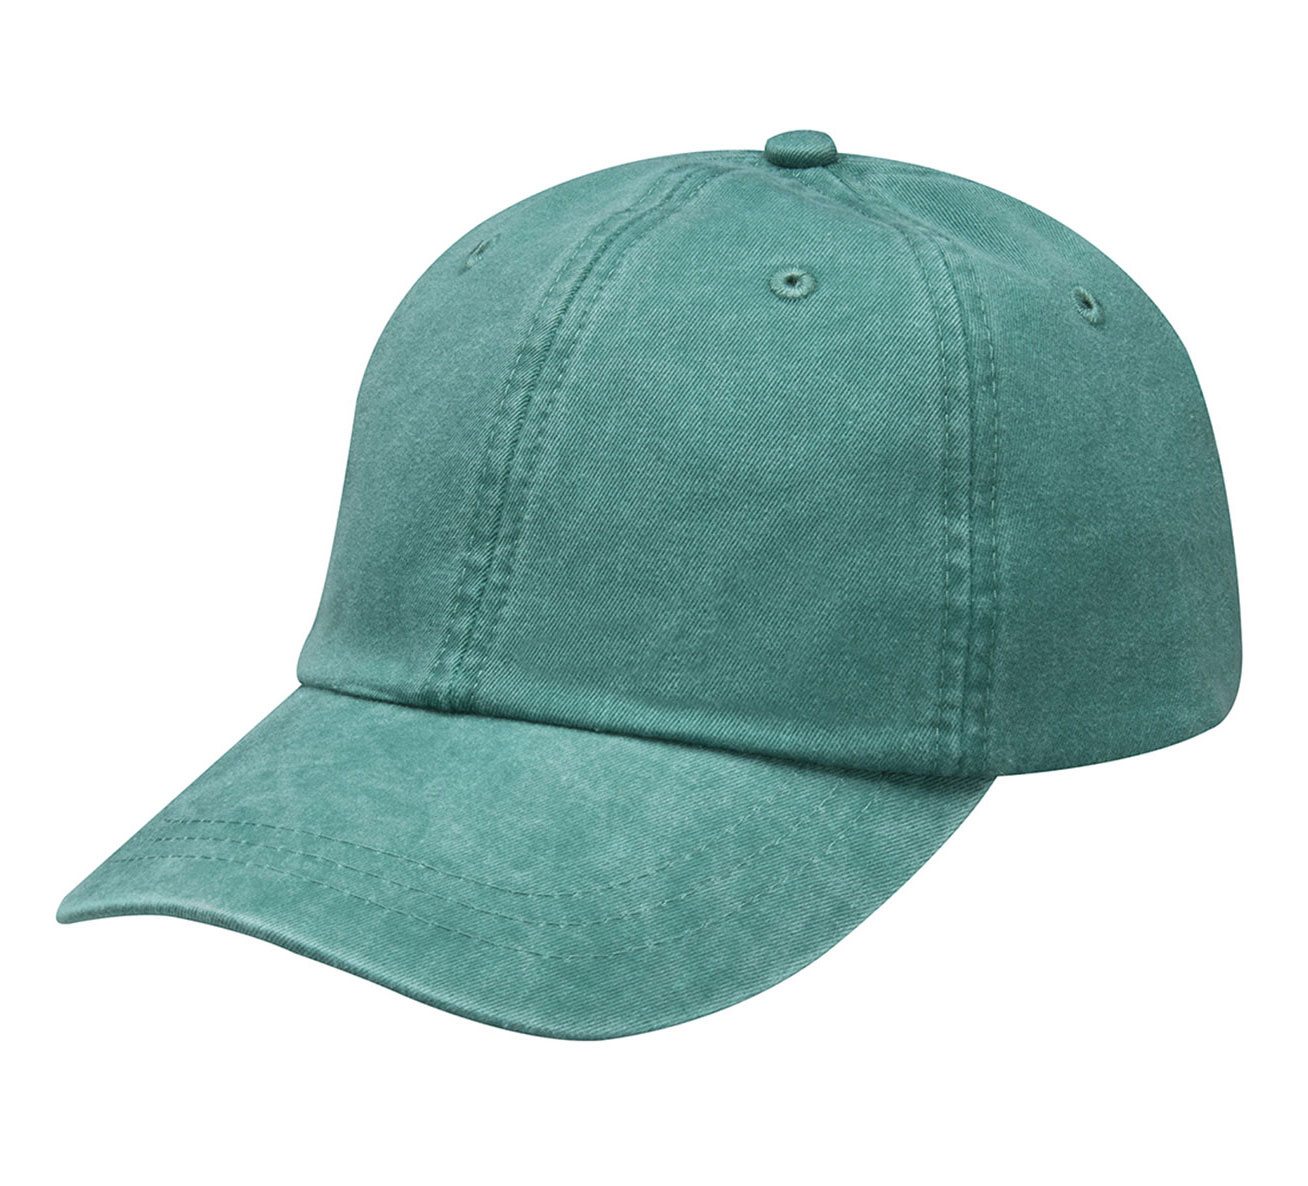 Design Adams Washed Pigment-Dyed Cap fc068a54838e